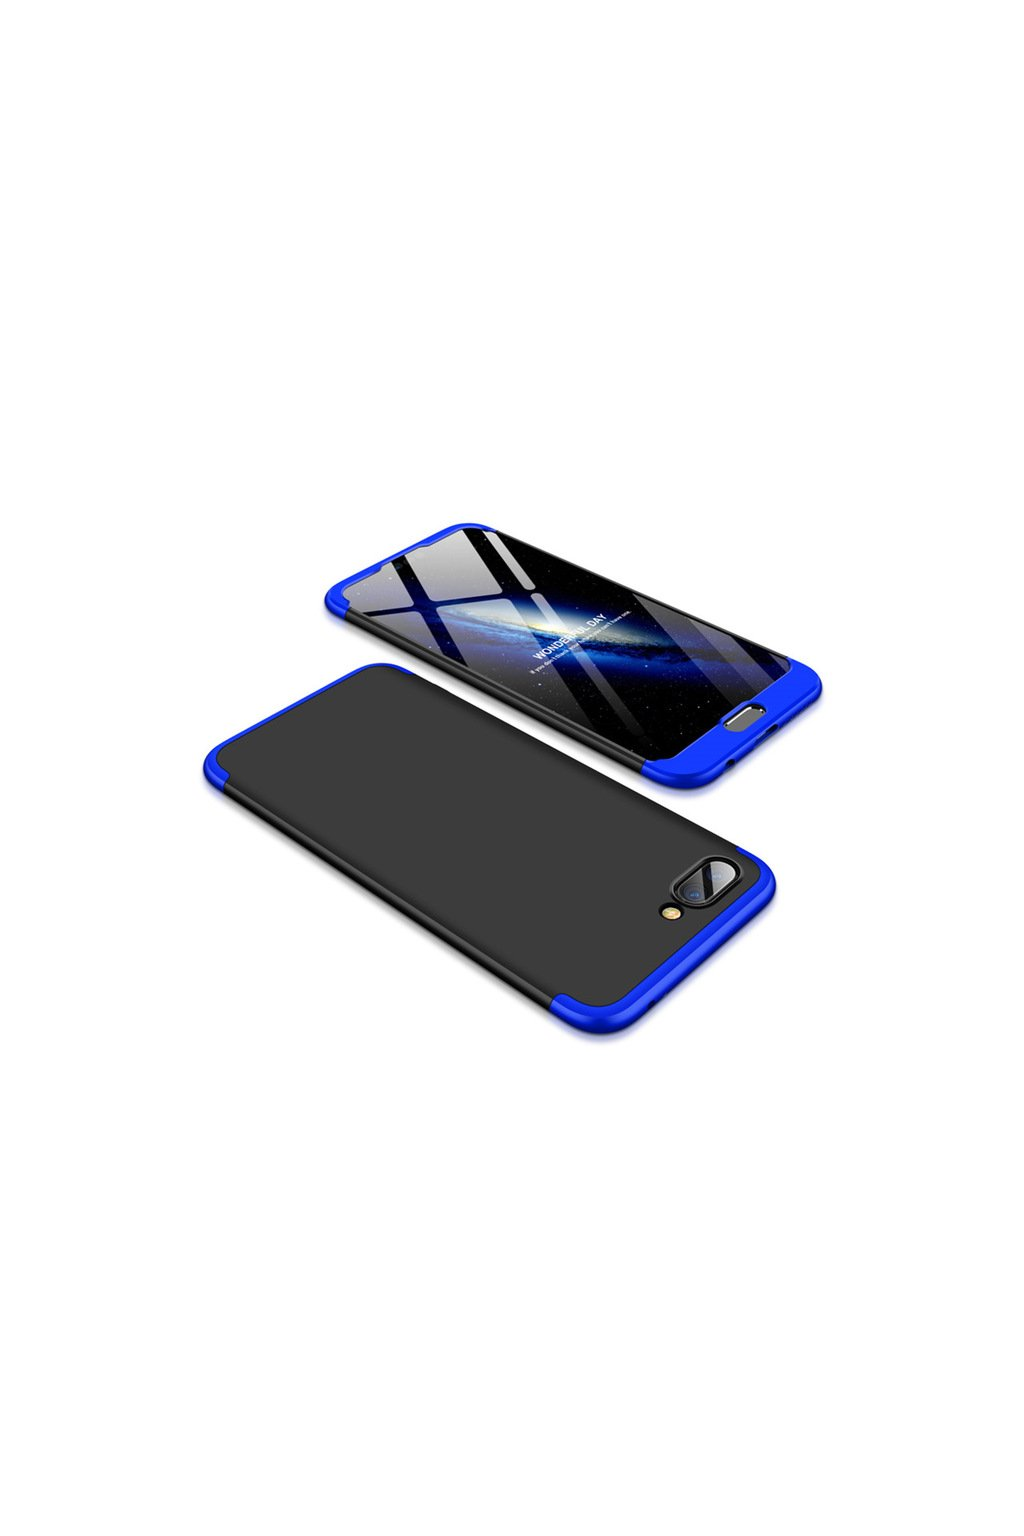 3 in 1 Plastic Hard 360 Full Protect Case FOR Huawei Honor View 10 Honor 10.jpg 640x640 (1)